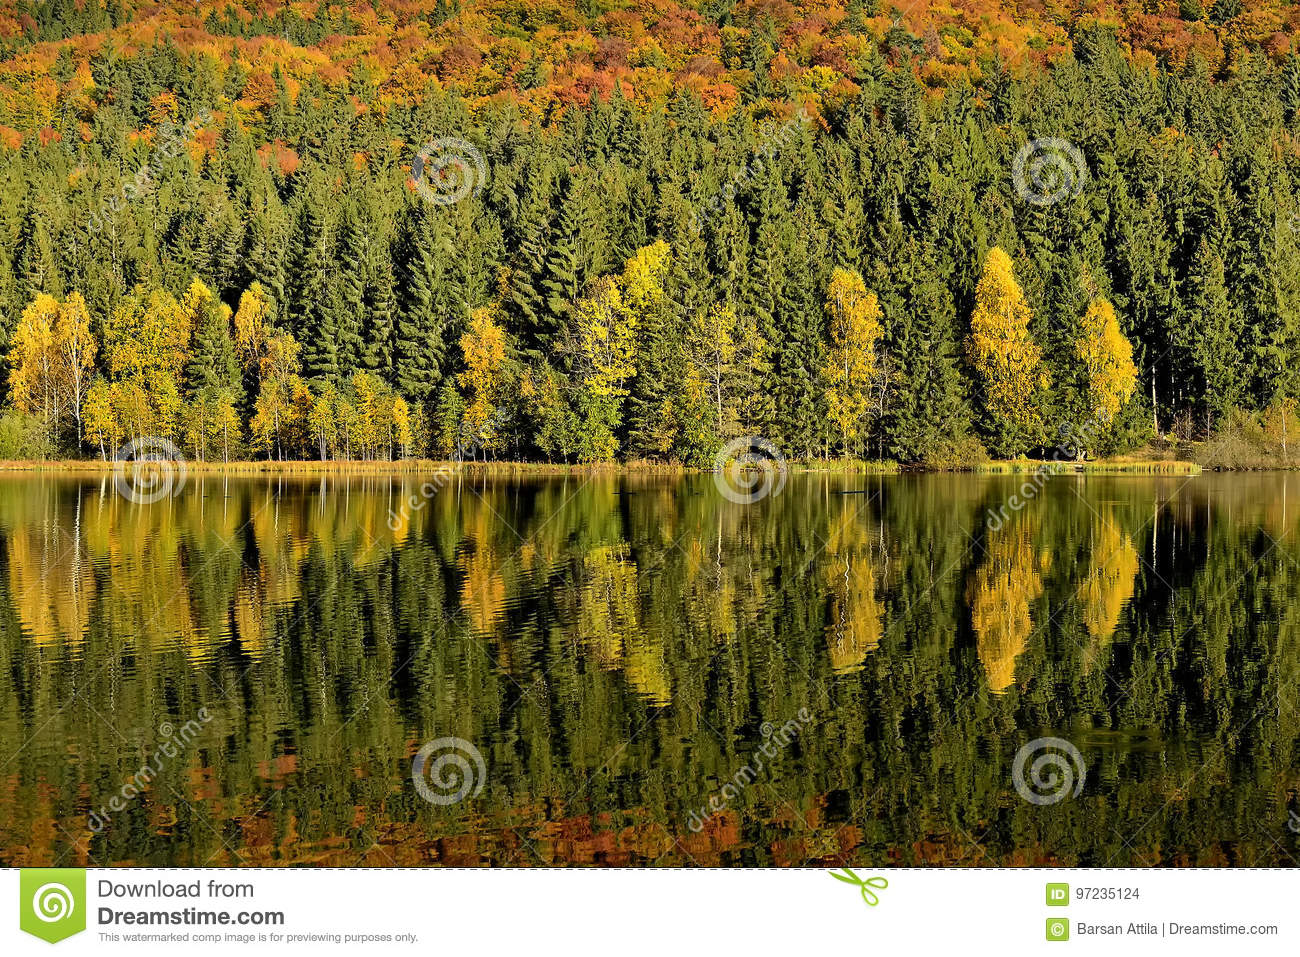 The Lake reflections of fall foliage. Colorful autumn foliage casts its reflection on the calm water